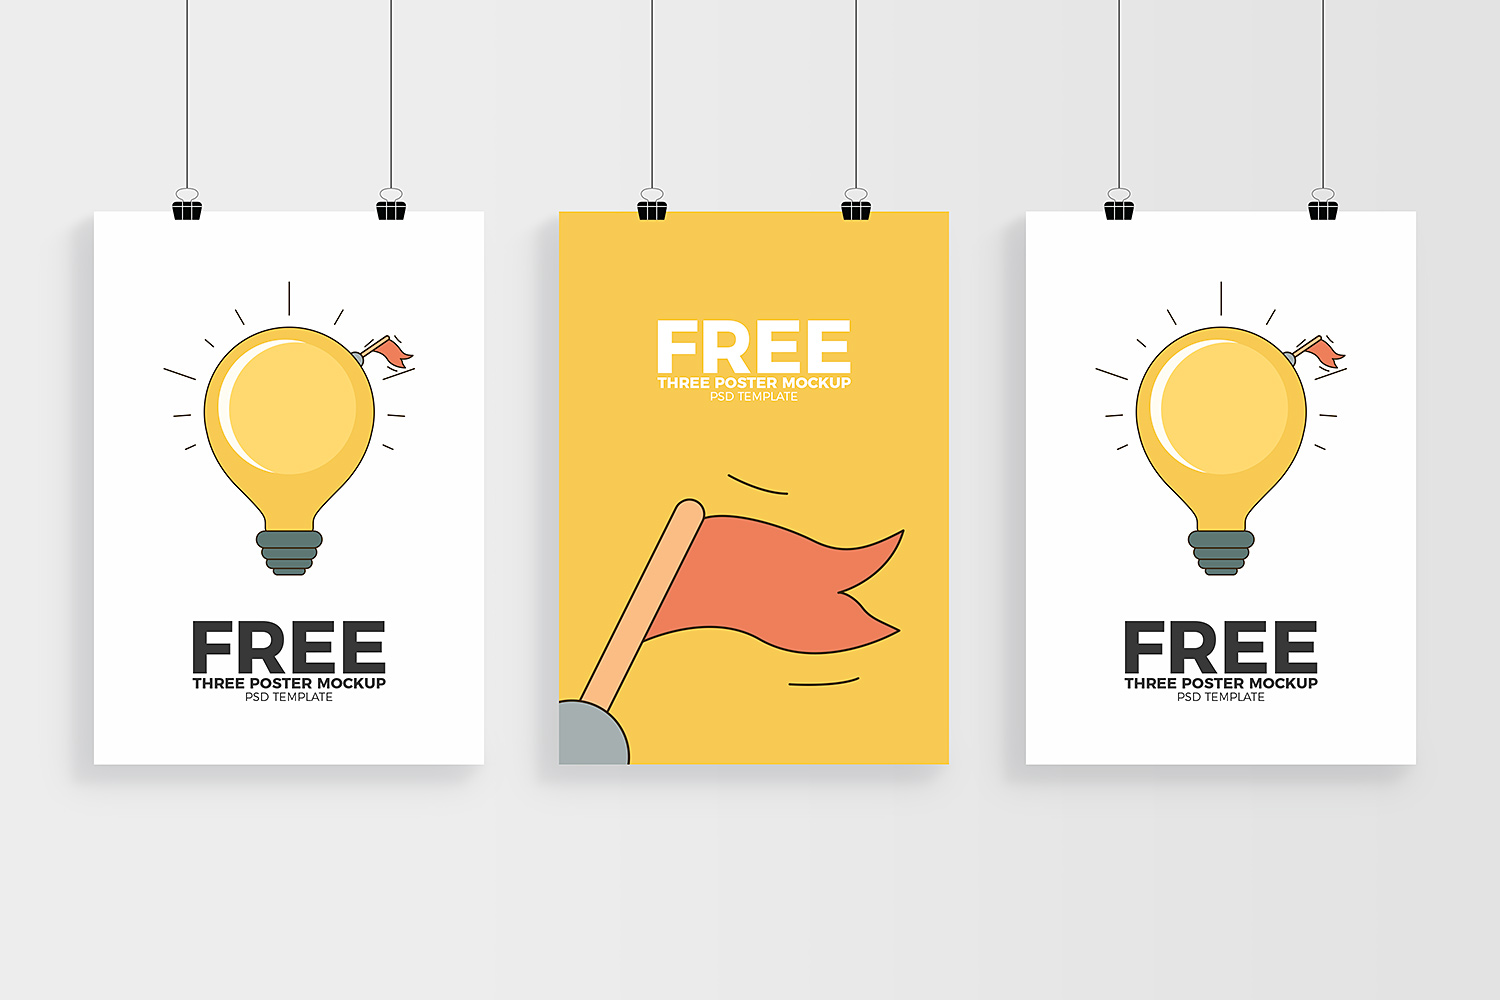 Three Posters Mockup Free PSD Template